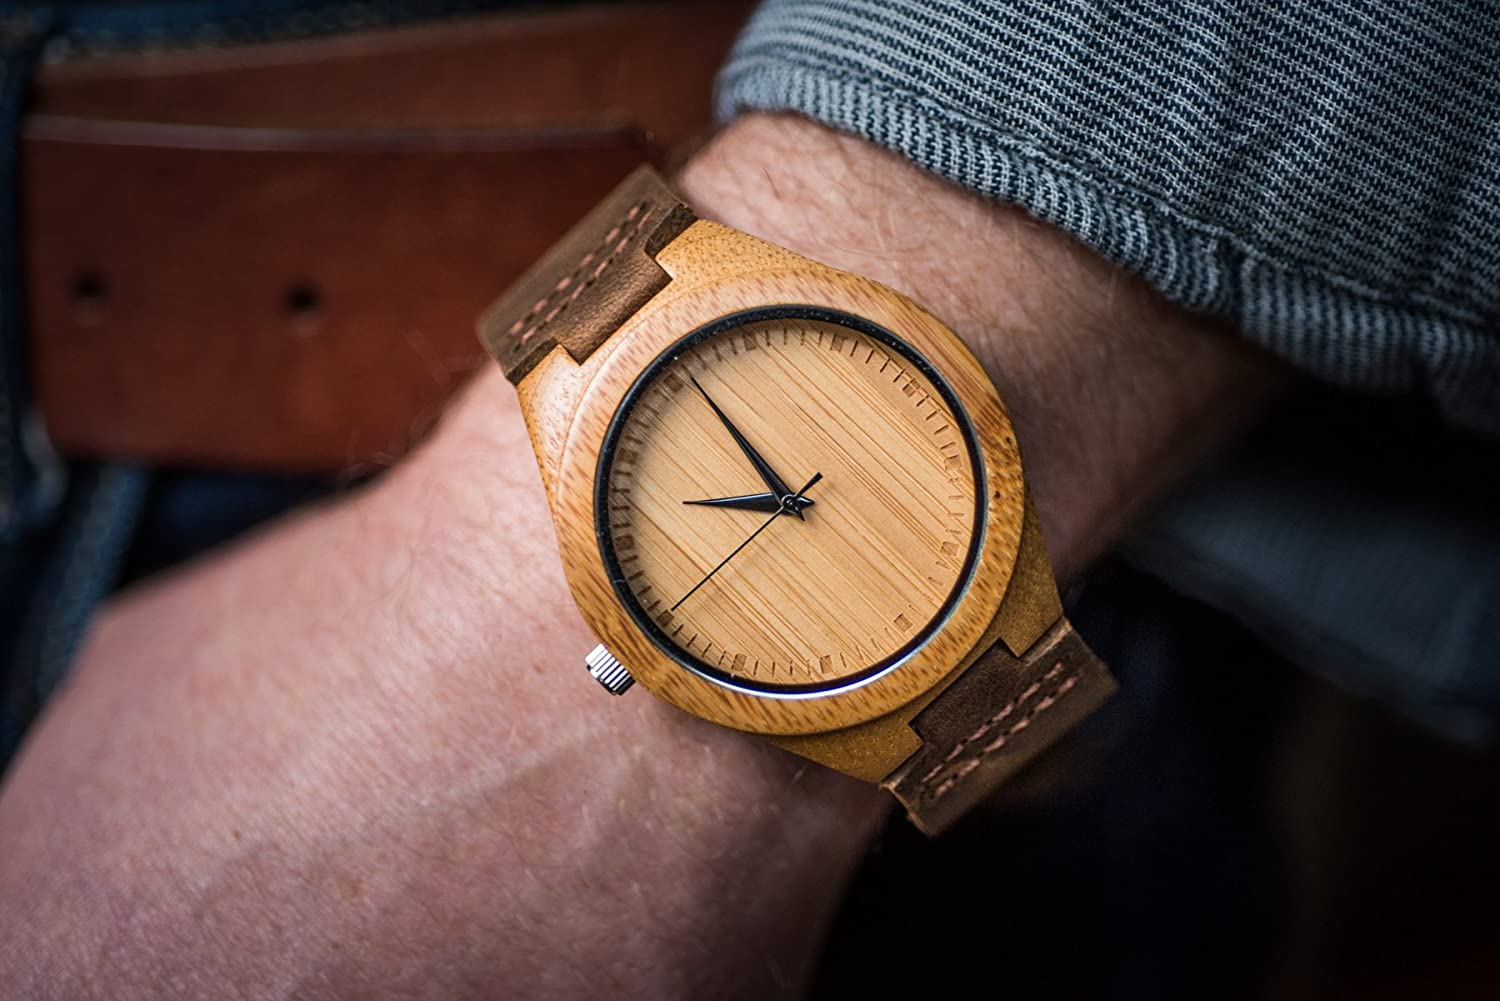 watches detail face wood product buy watch bamboo skymood wrist dropshipping